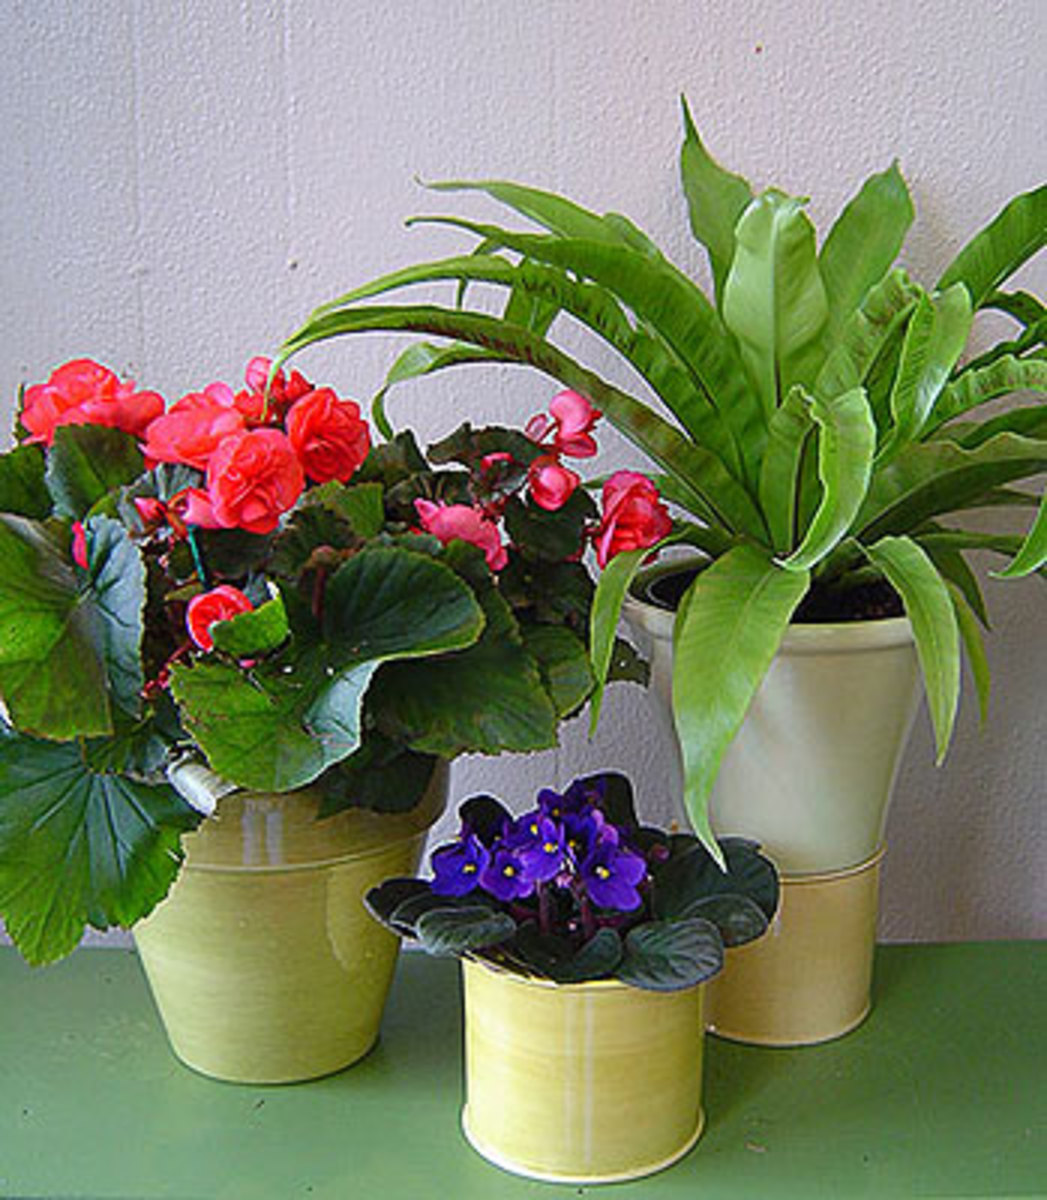 Plants and flowers improve the positive chi in your home